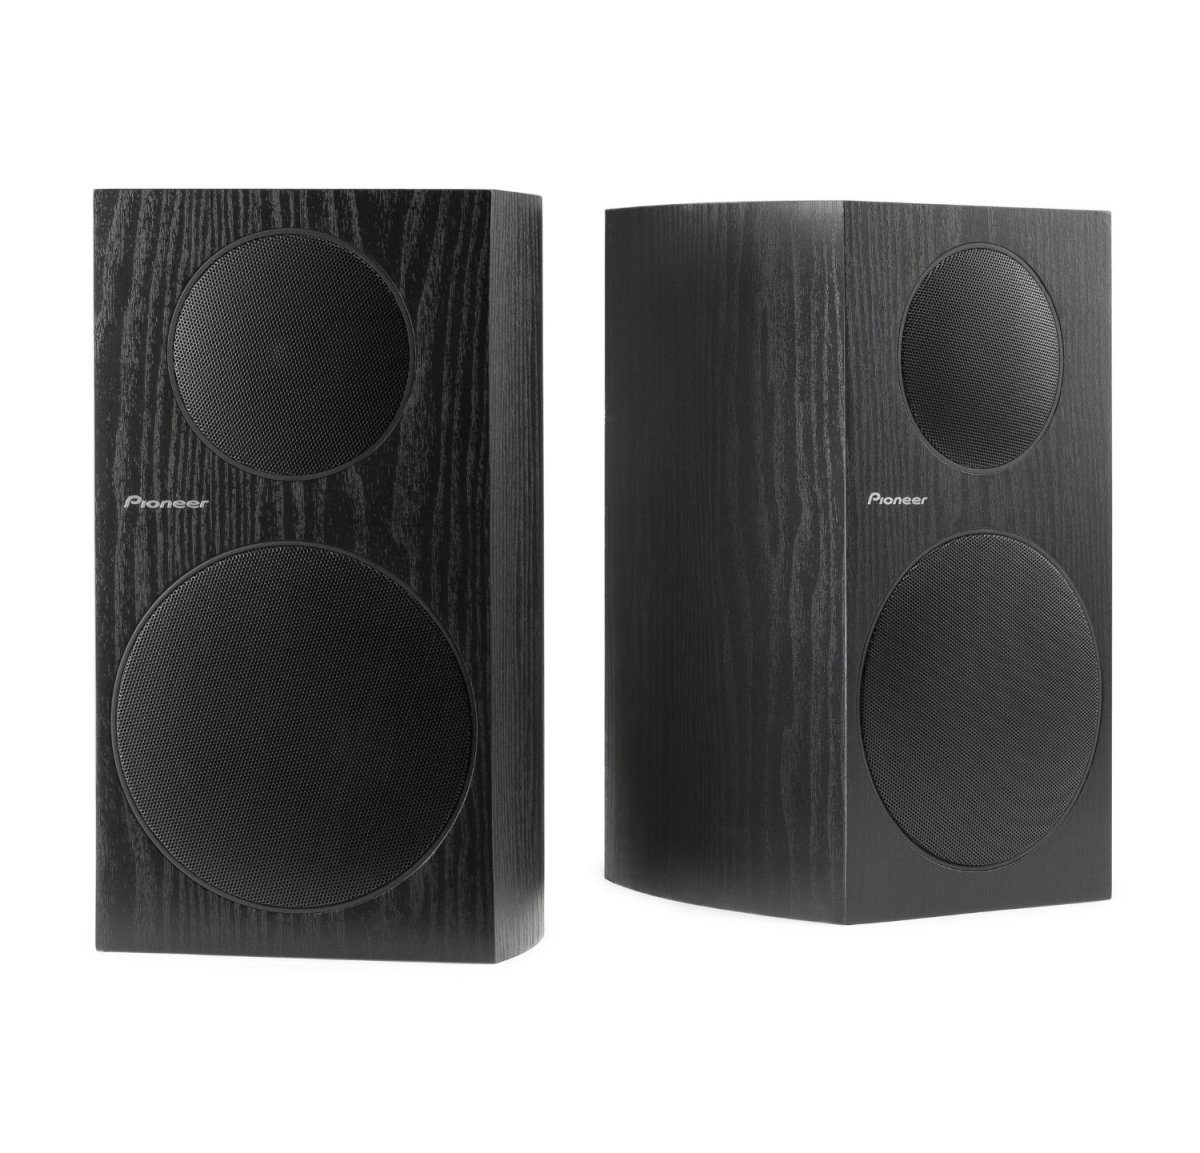 Pioneer SP-BS41-LR bookshelf speakers